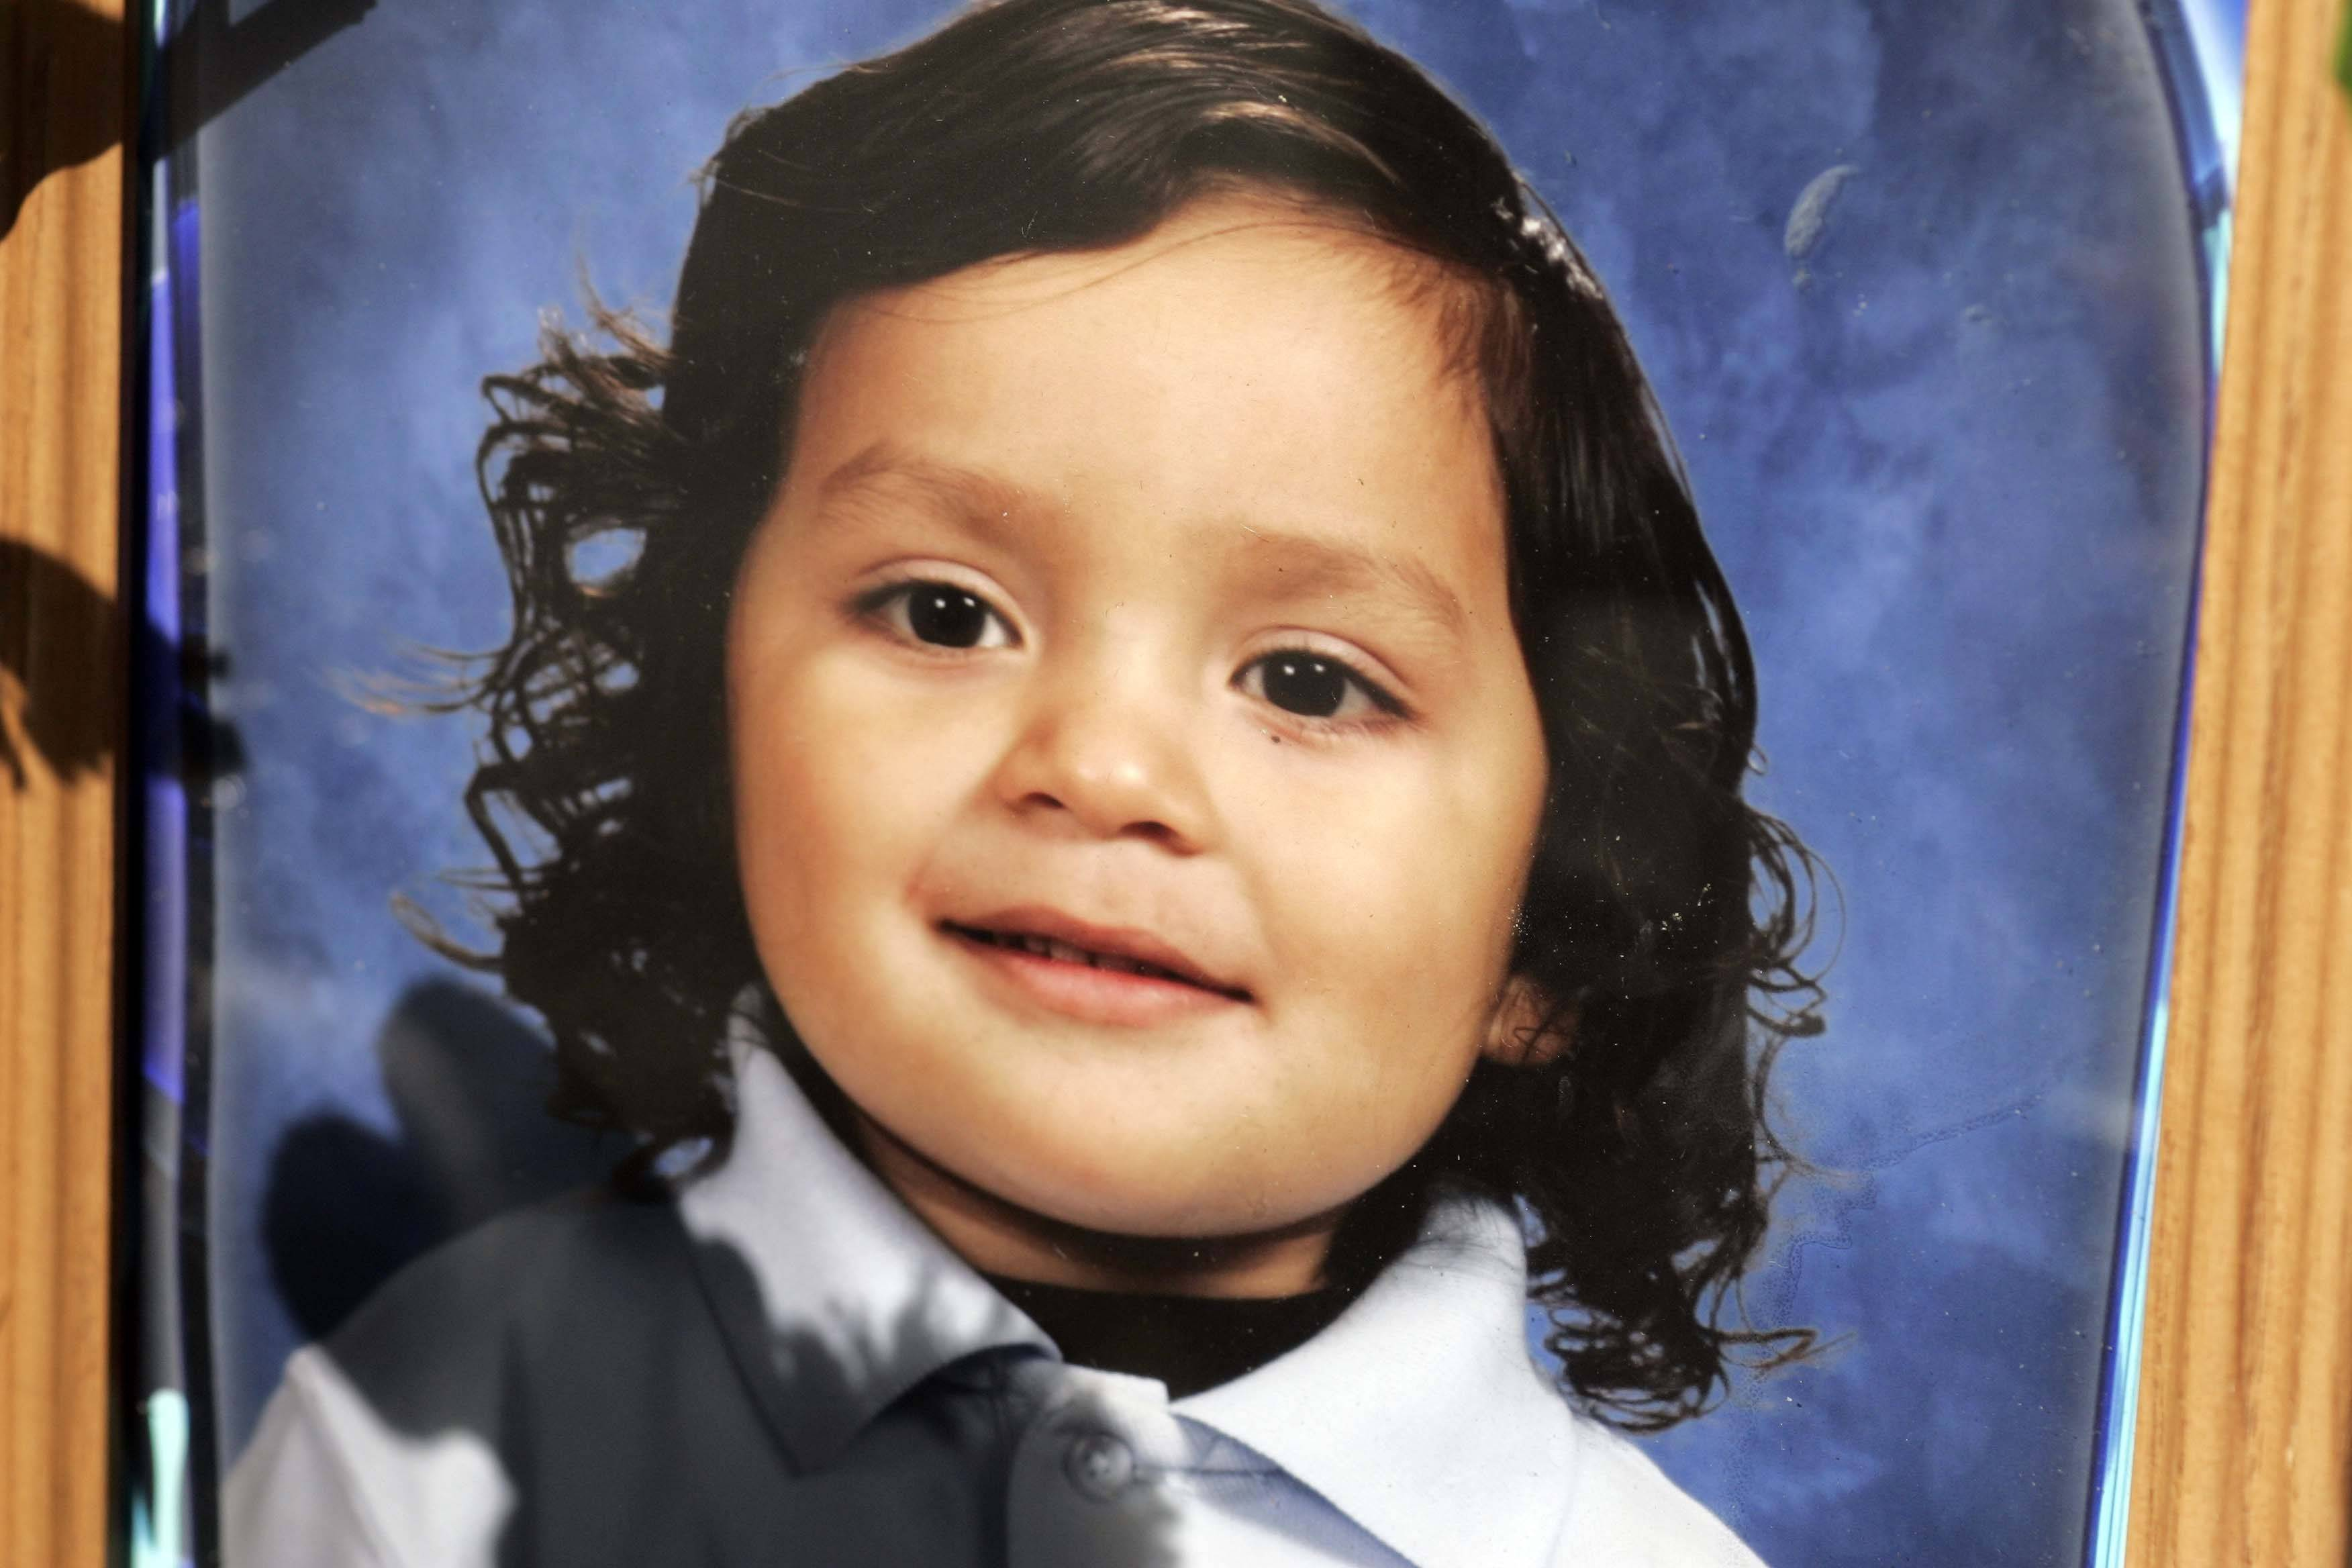 Eric M. Galarza Jr., 5, was the victim of what police called a gang-related shooting on Friday night.